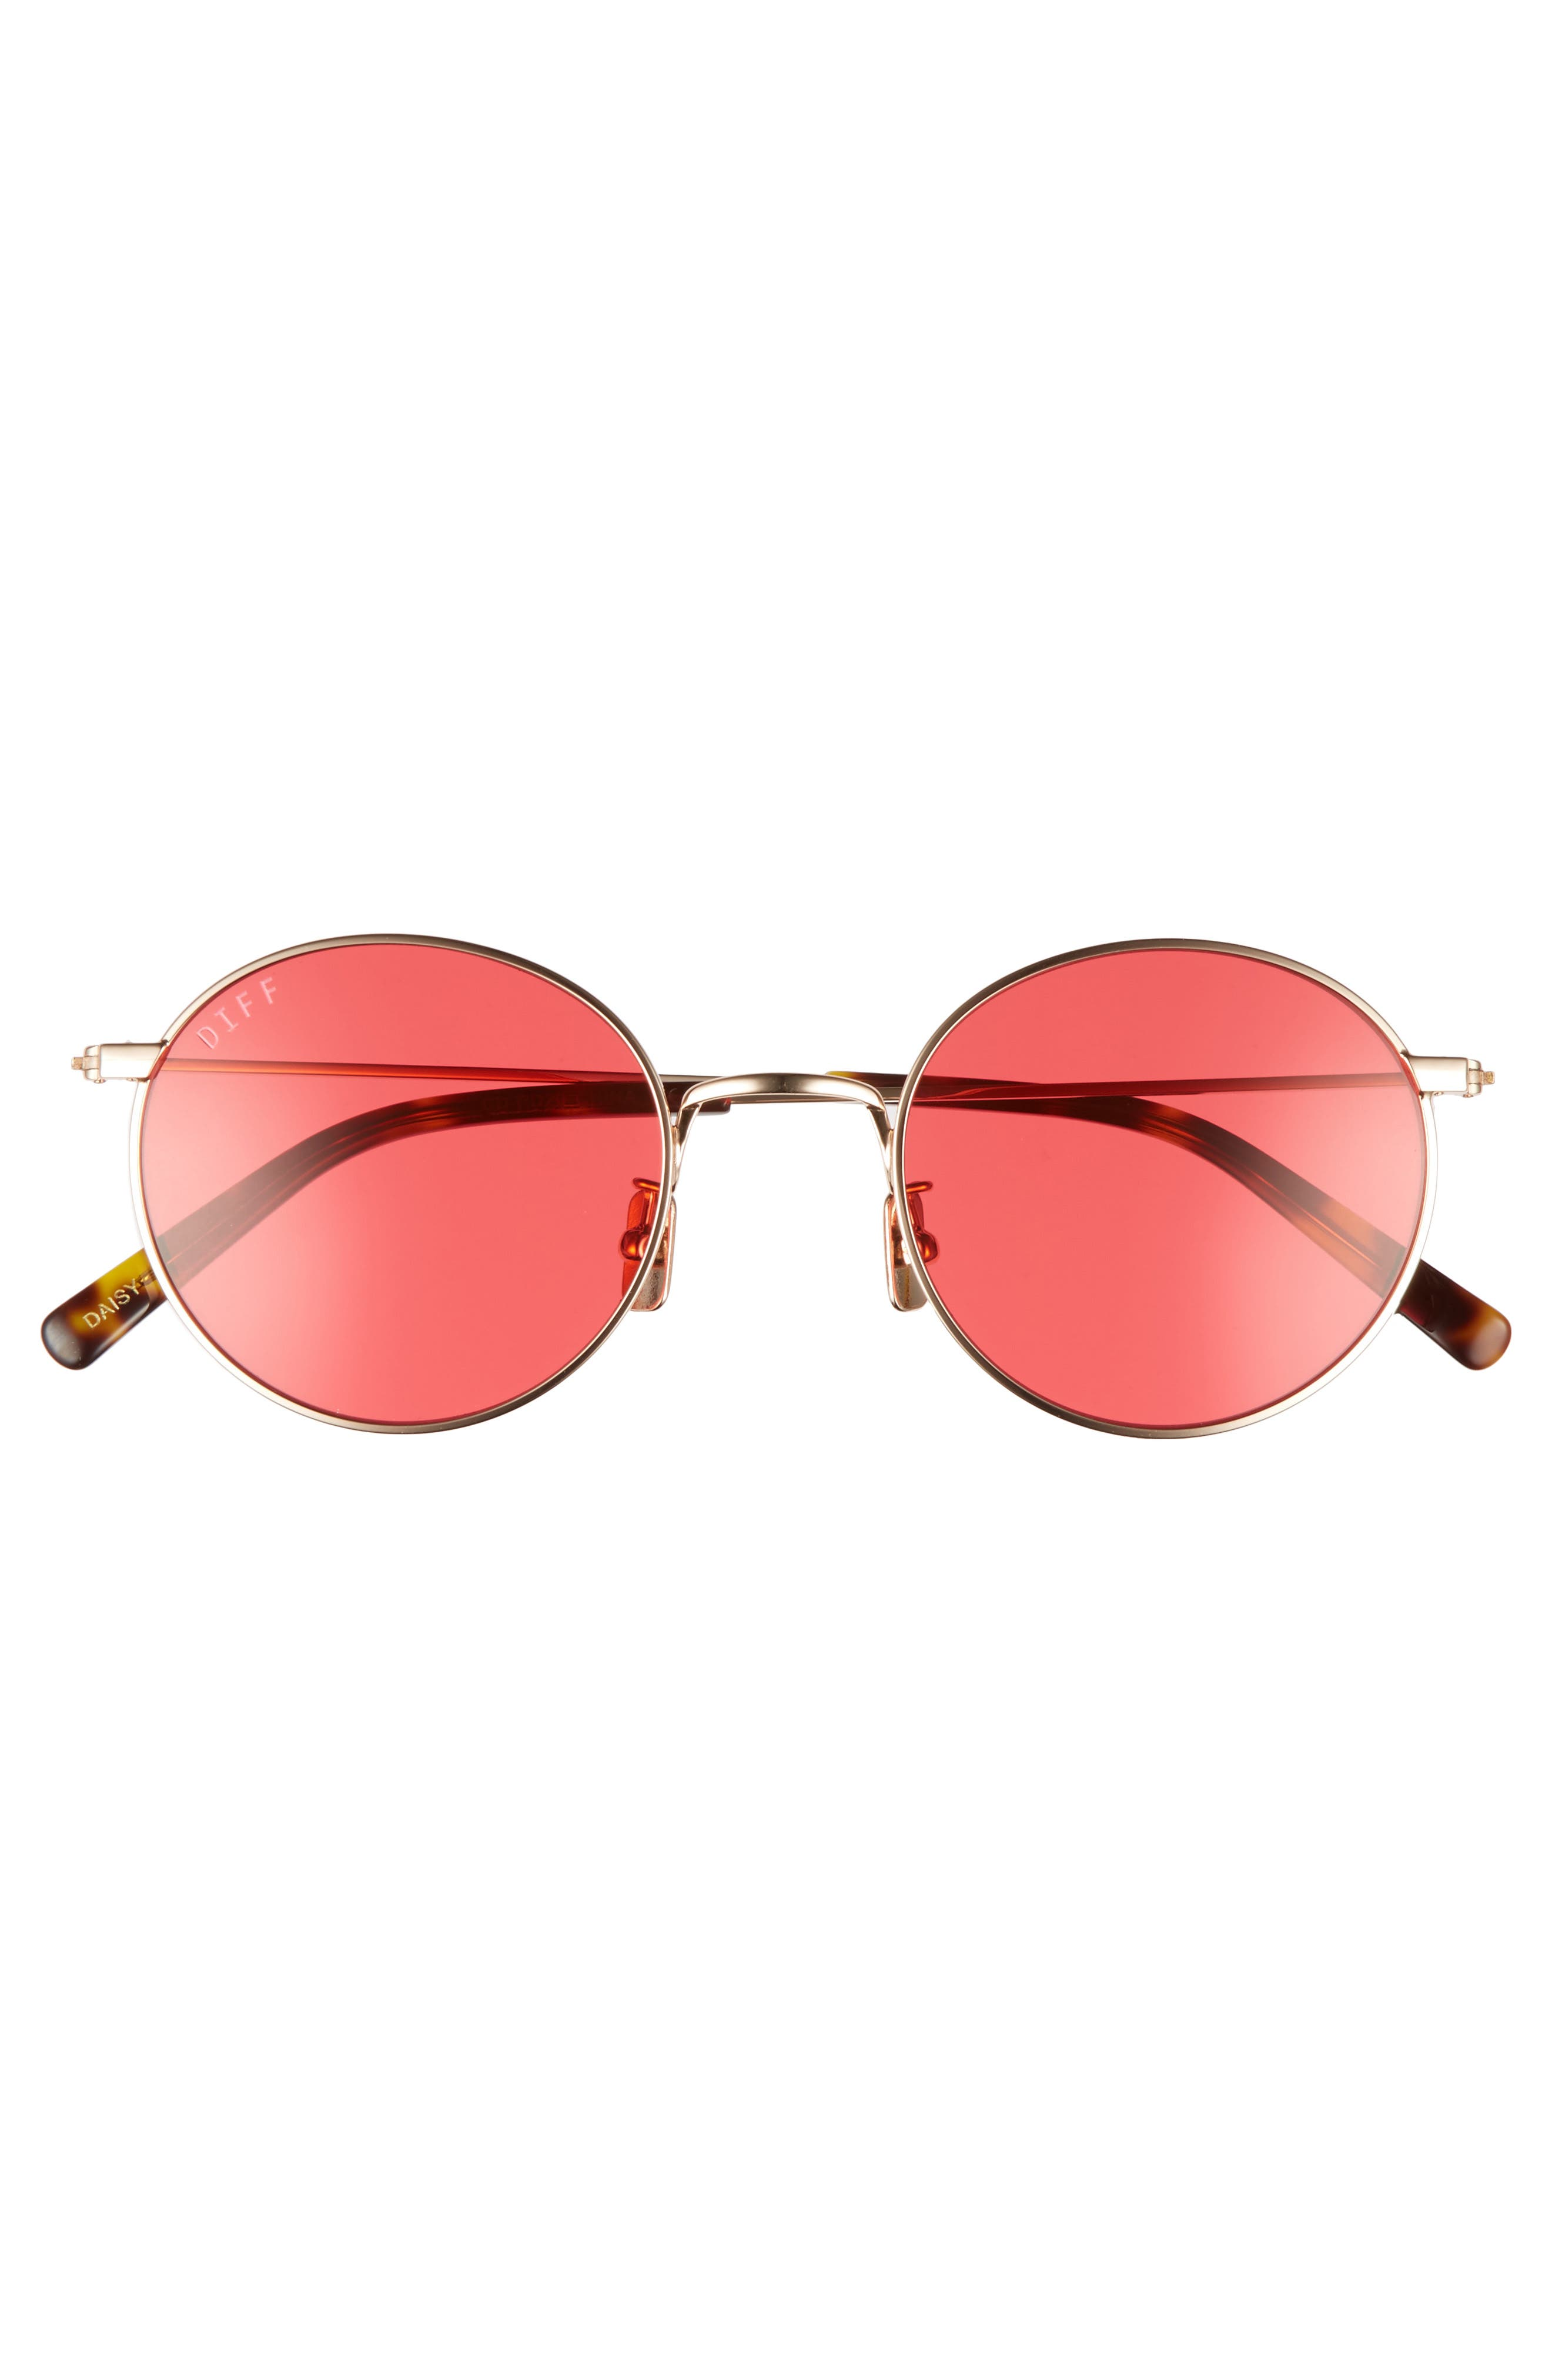 Daisy 51mm Round Sunglasses,                             Alternate thumbnail 3, color,                             Gold/ Red